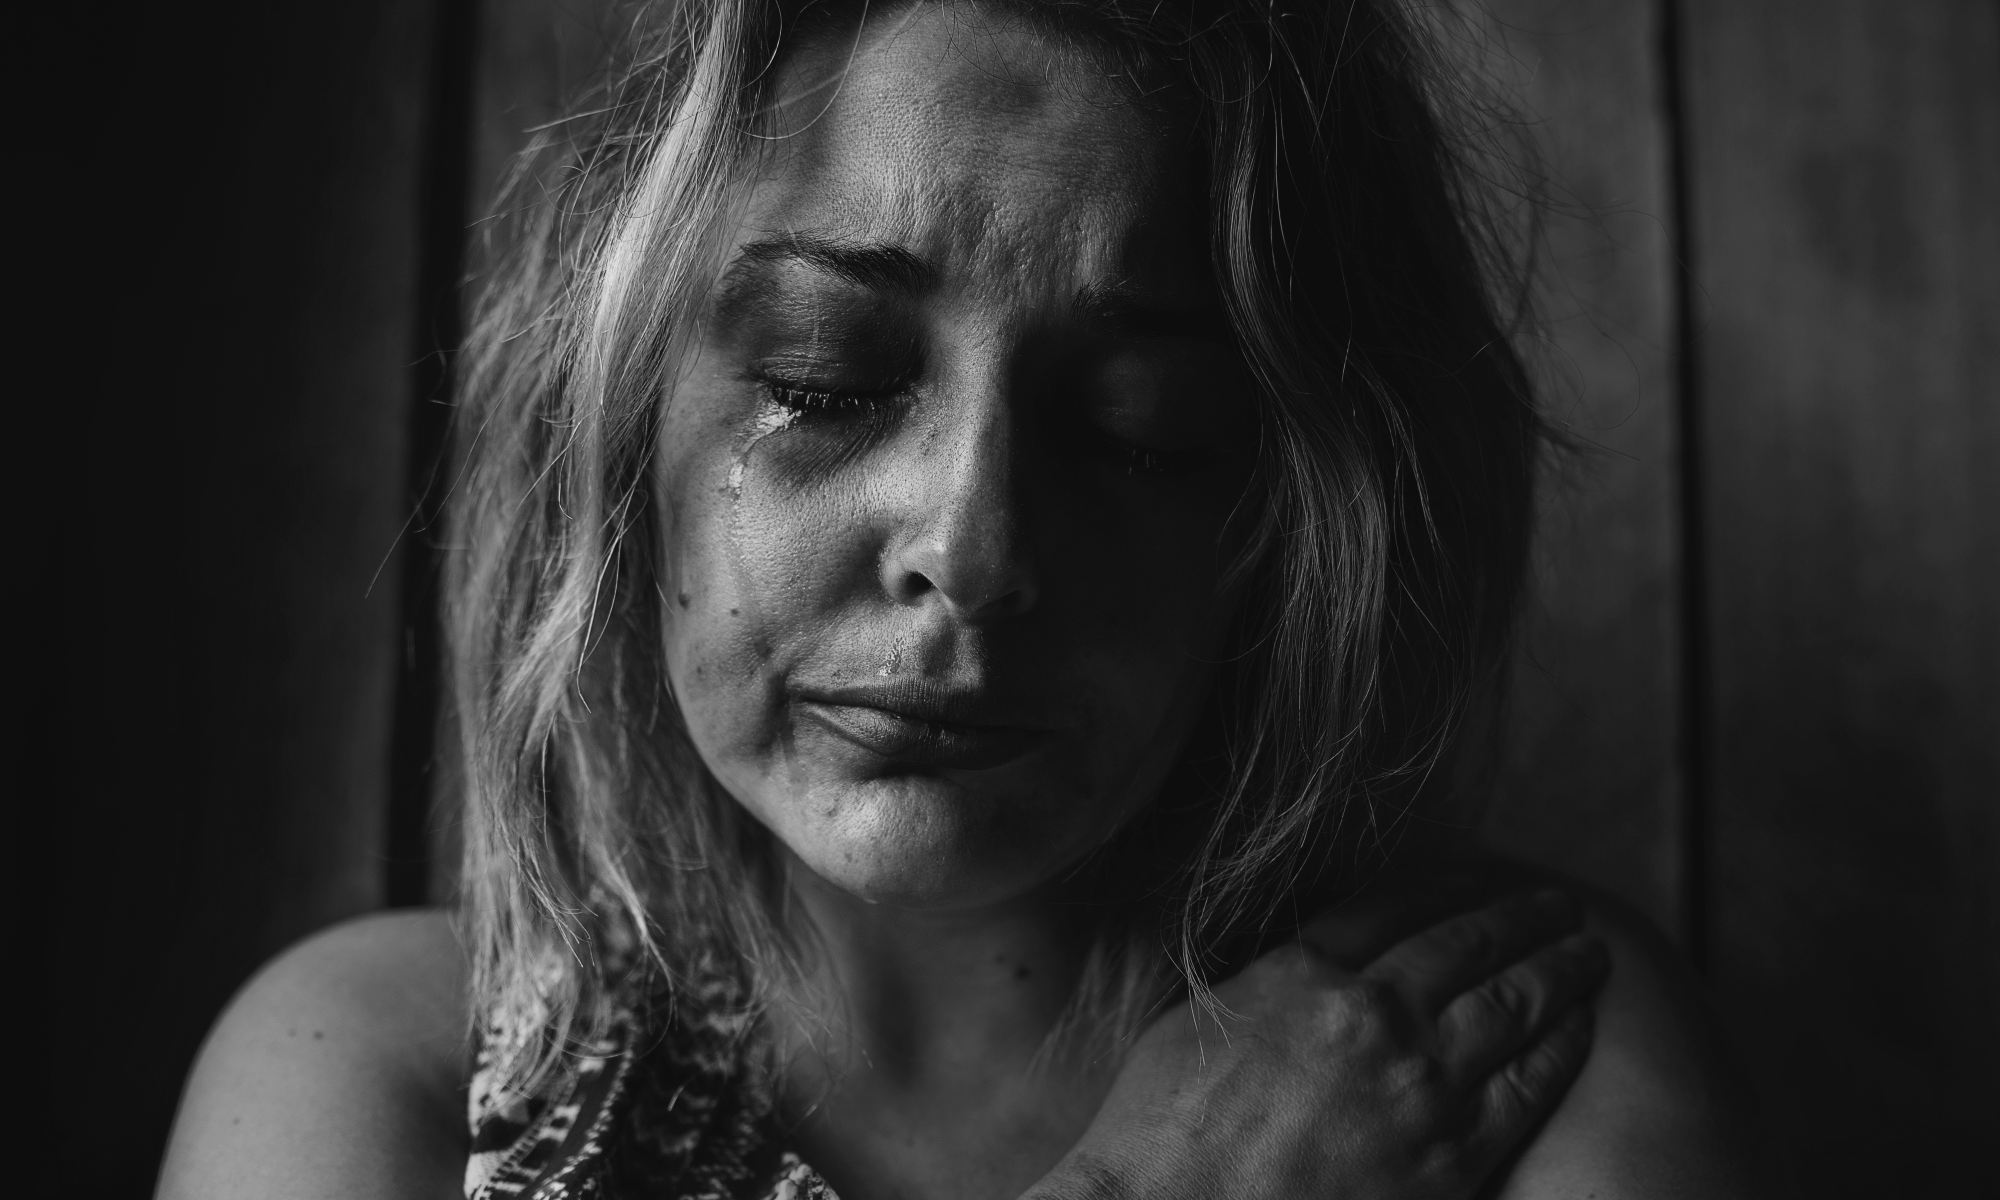 Grayscale photo of a woman crying and suffering from a mental illness